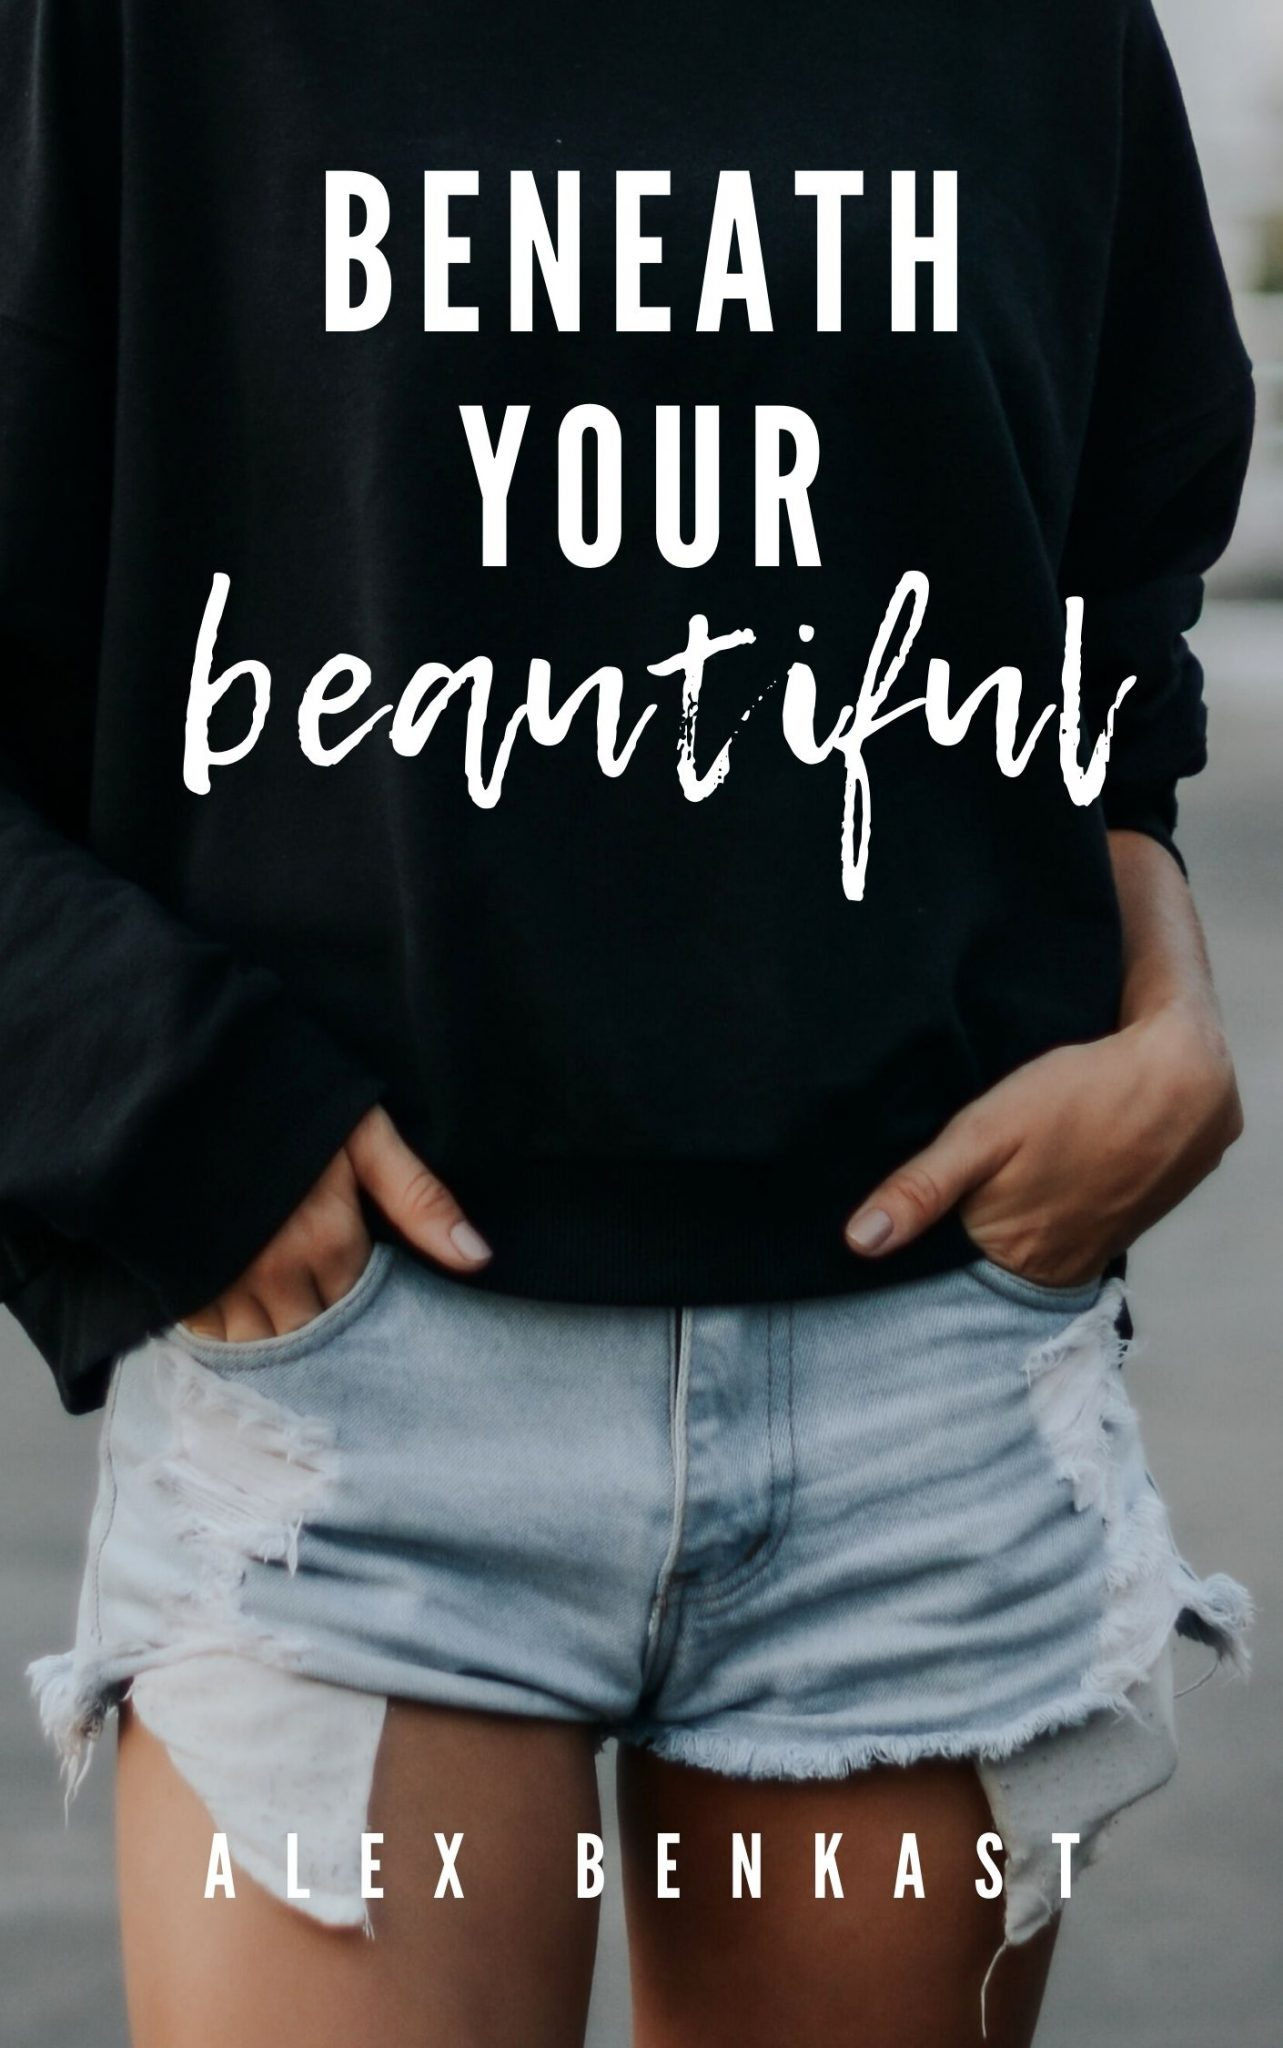 Book Cover of Beneath Your Beautiful - Rebels Like Us Book 4 by Alex Benkast